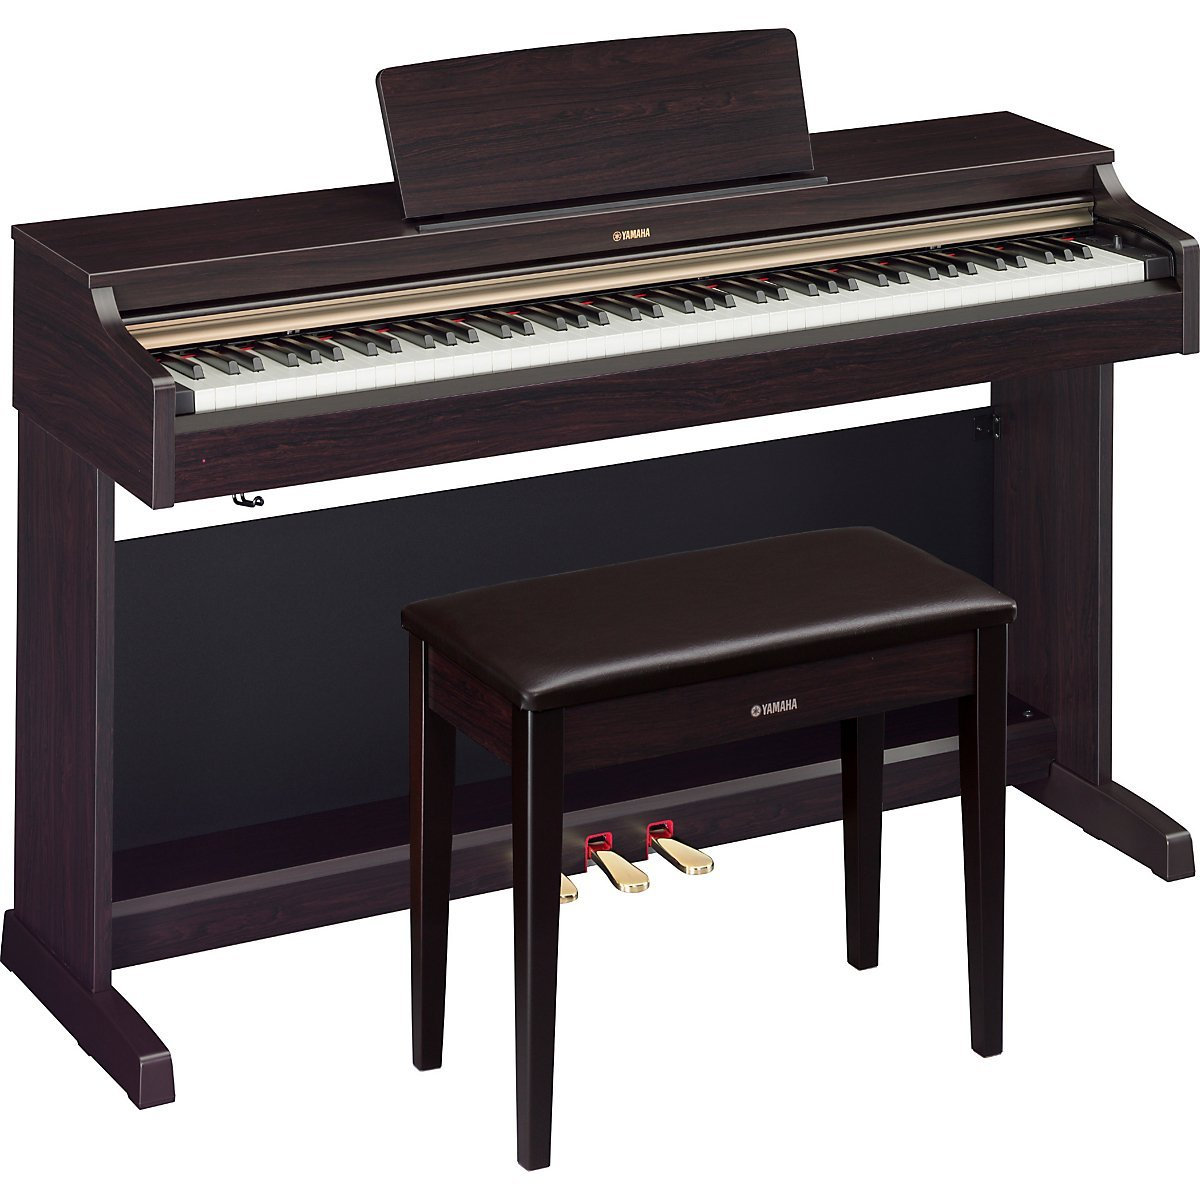 yamaha arius ydp 162 digital piano review. Black Bedroom Furniture Sets. Home Design Ideas